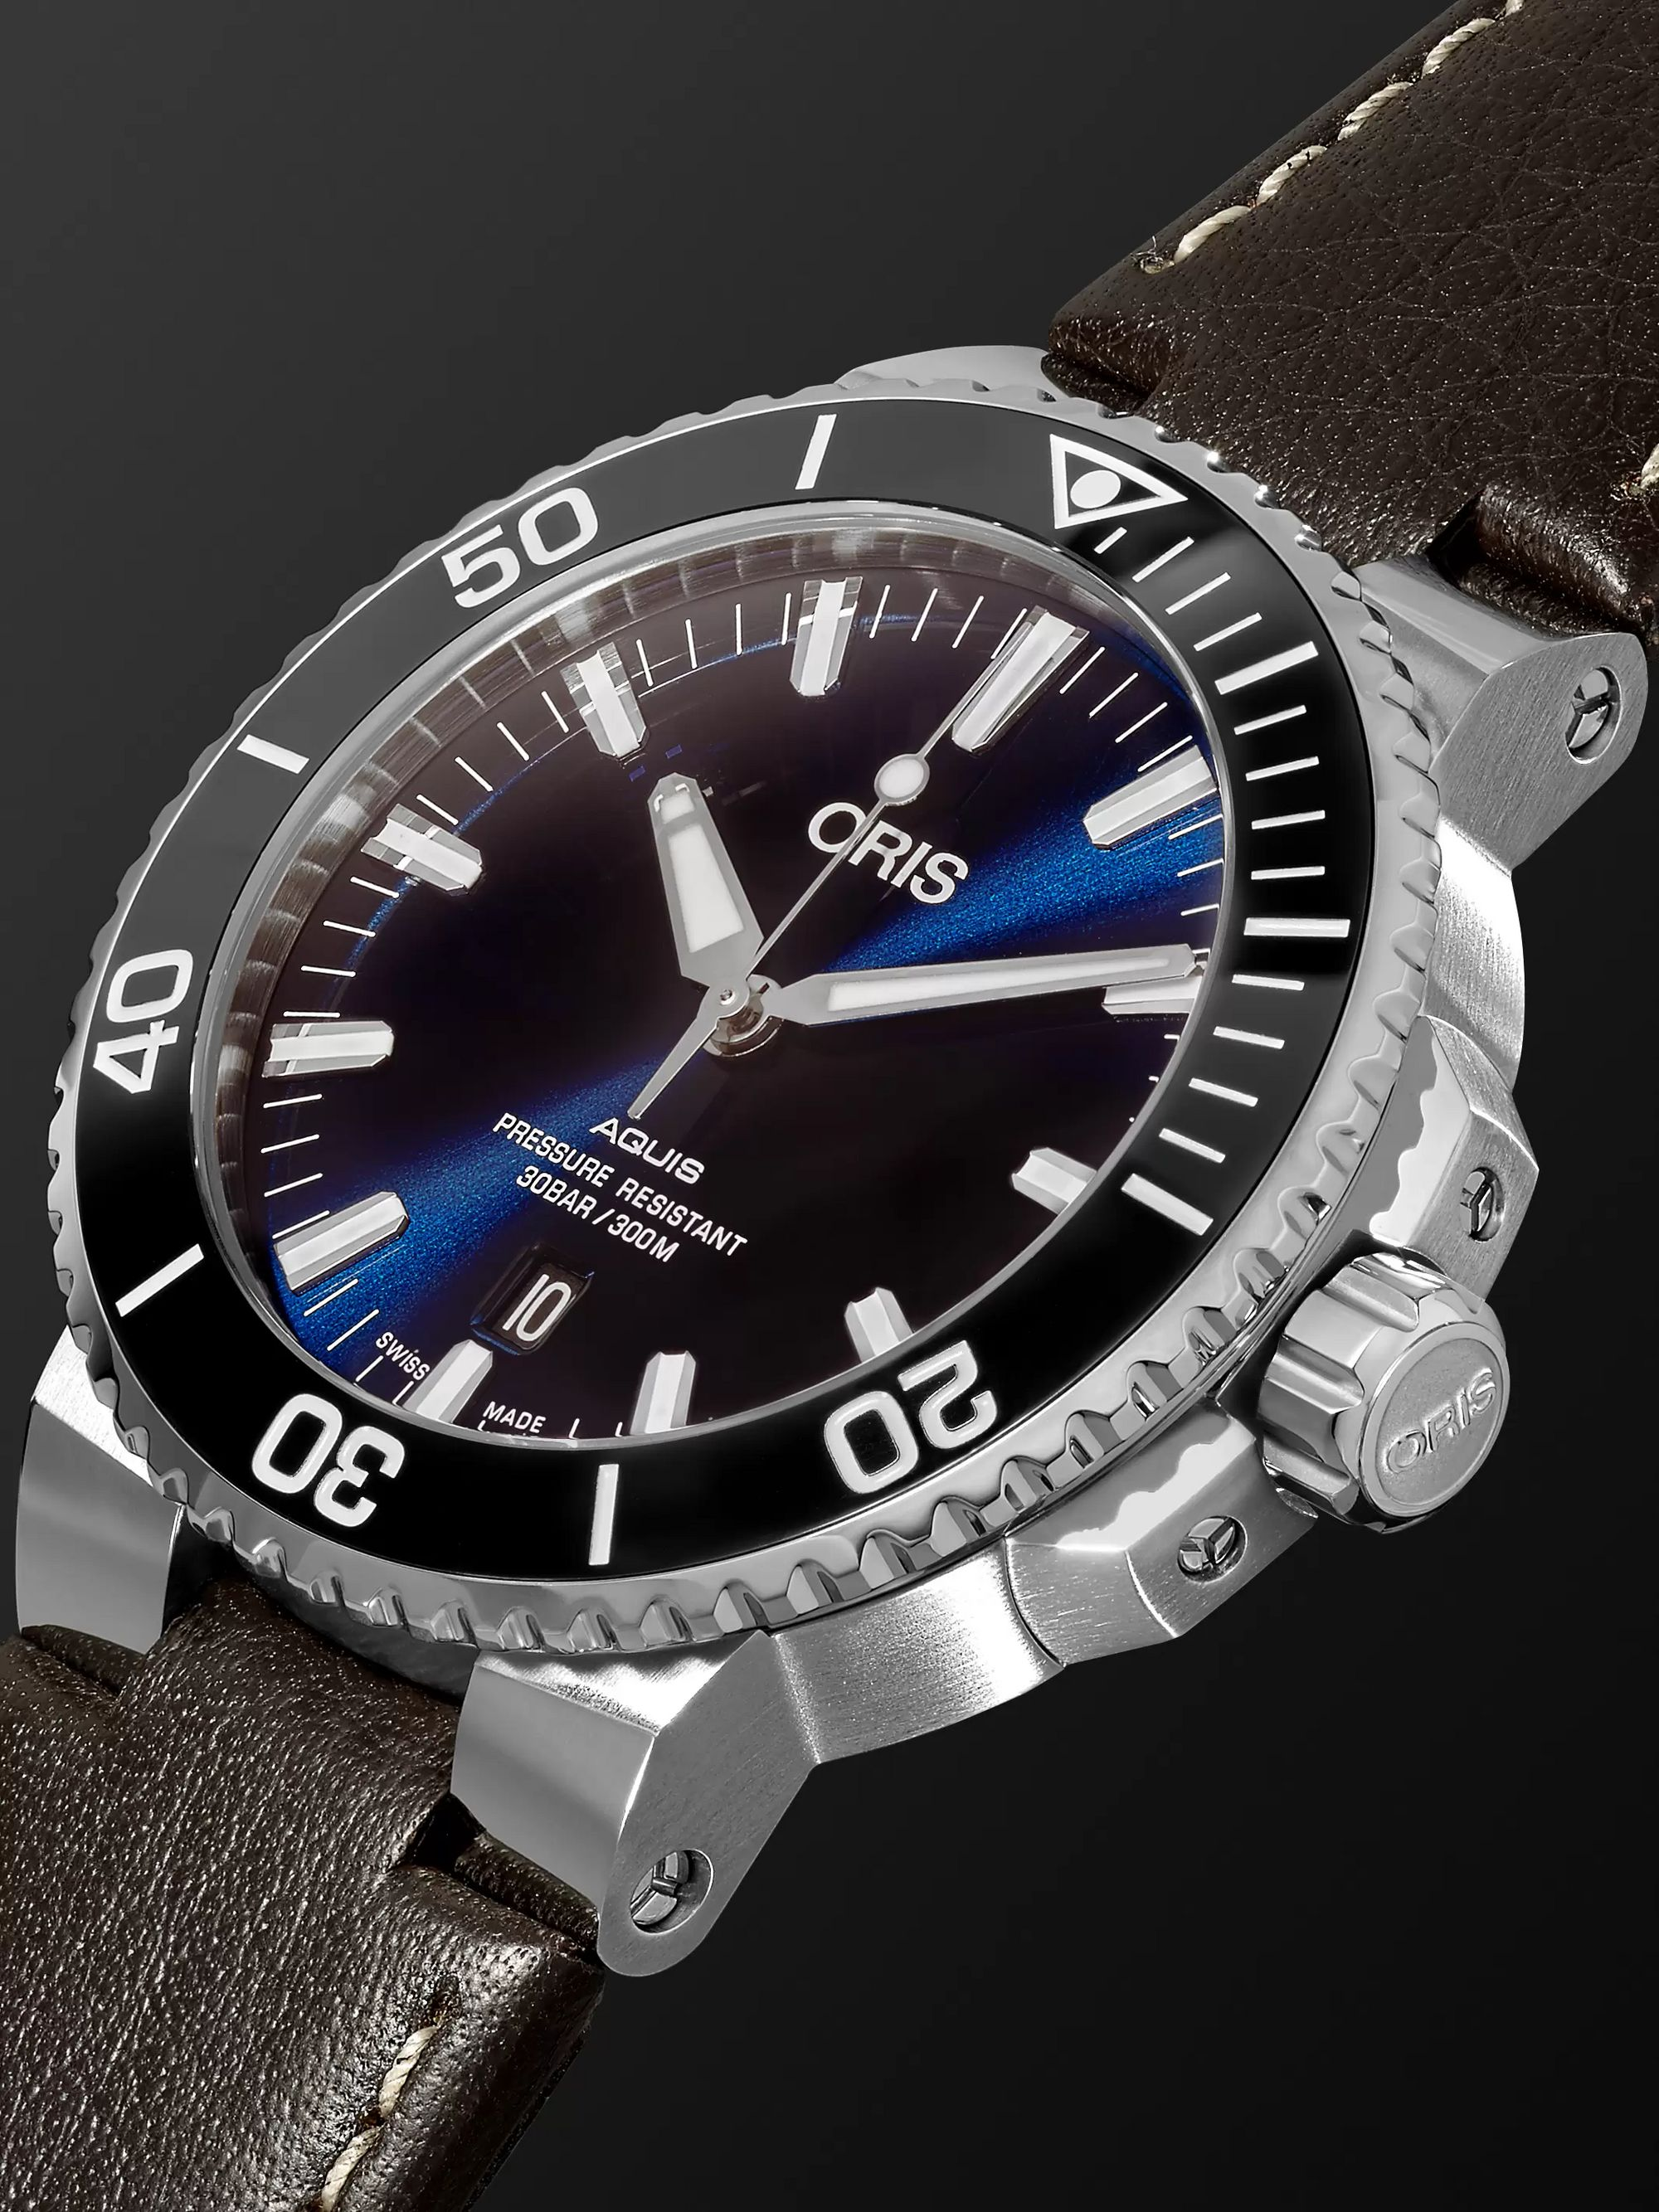 Oris Aquis Automatic 43mm Stainless Steel and Leather Watch, Ref. No. 01 733 7730 4135- 07 5 24 10 EB